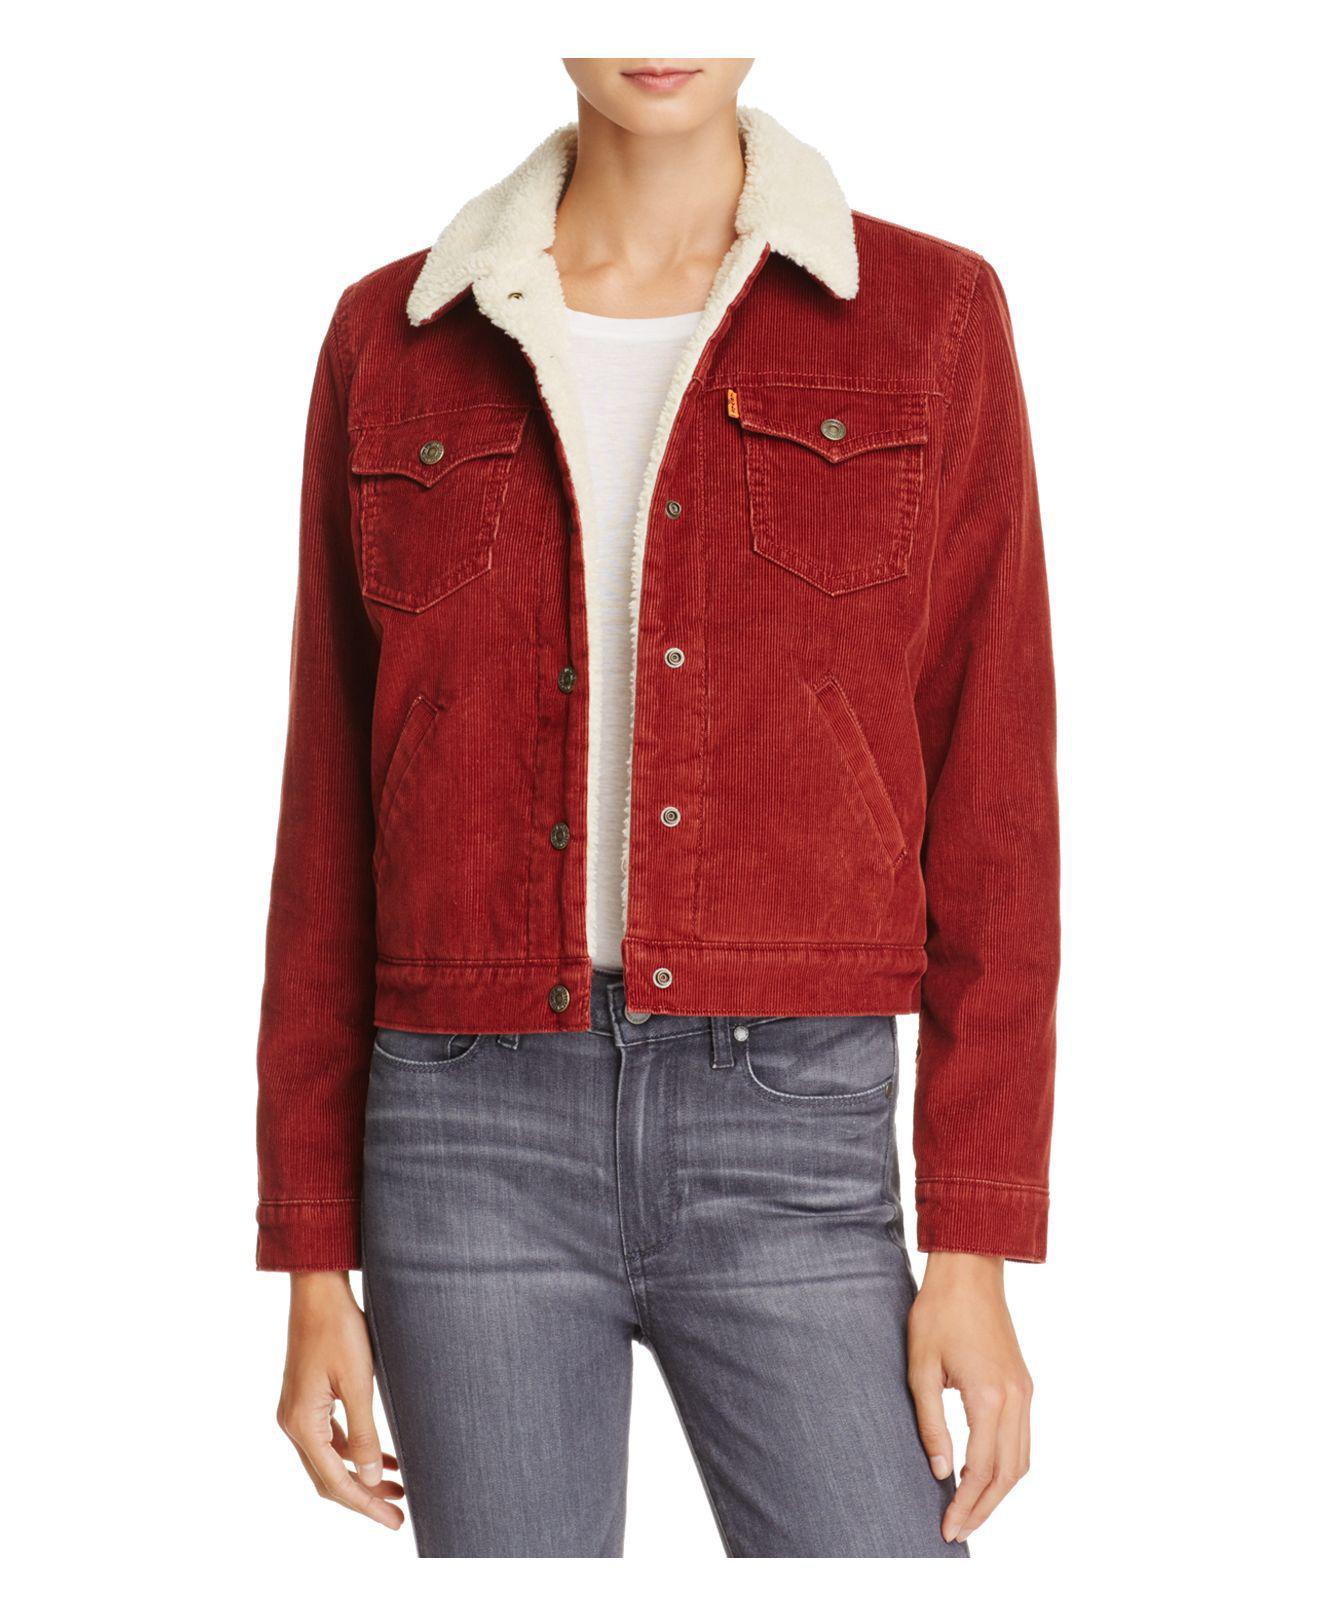 lyst levi 39 s corduroy sherpa lined trucker jacket in red. Black Bedroom Furniture Sets. Home Design Ideas